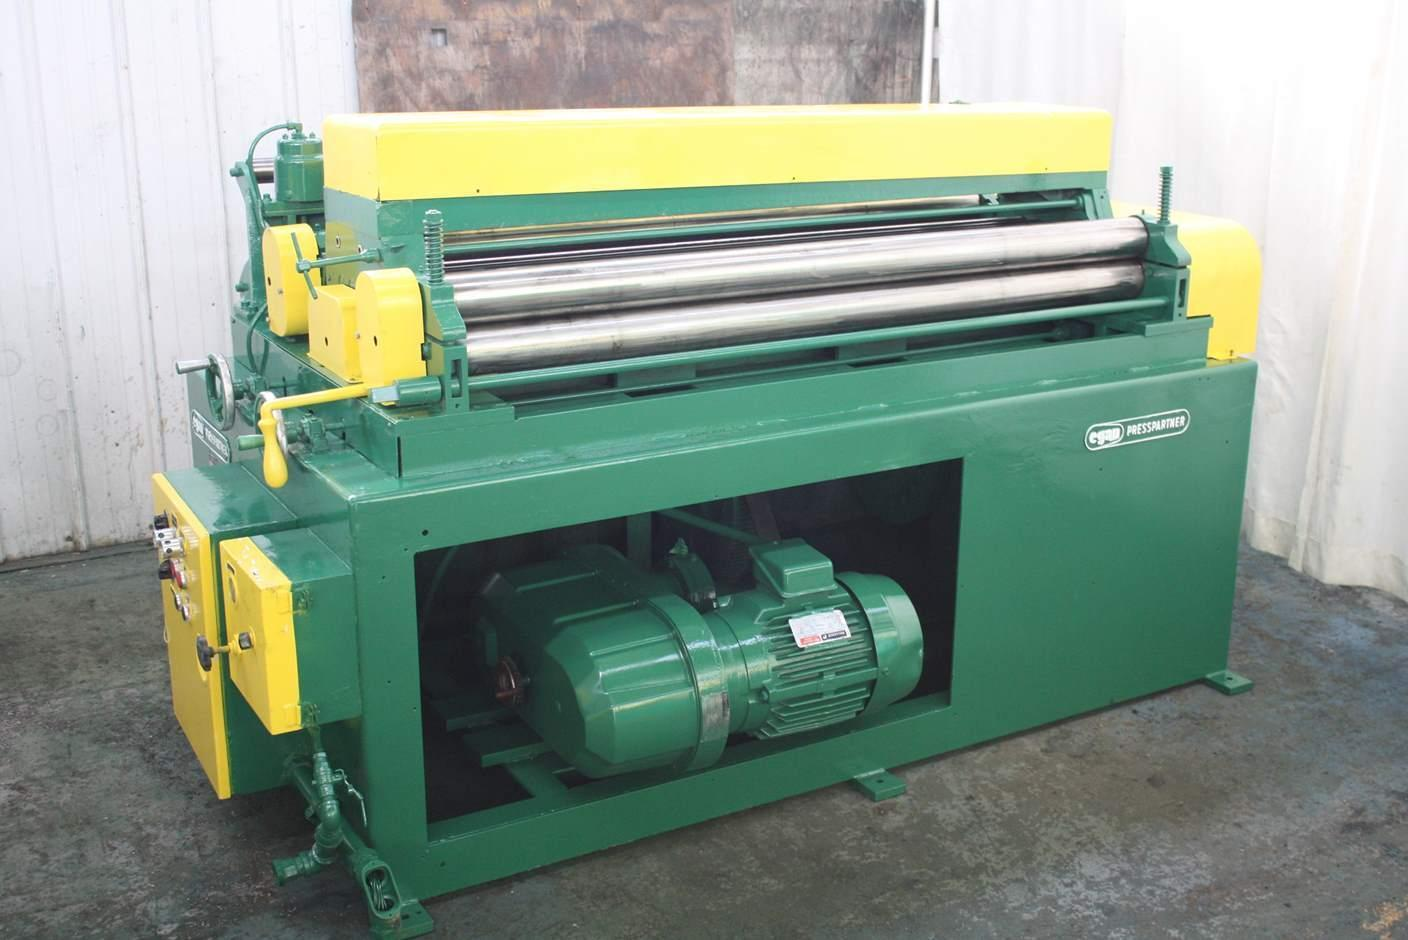 60' EGAN POWERED VARIABLE SPEED STRAIGHTENER: STOCK #66893